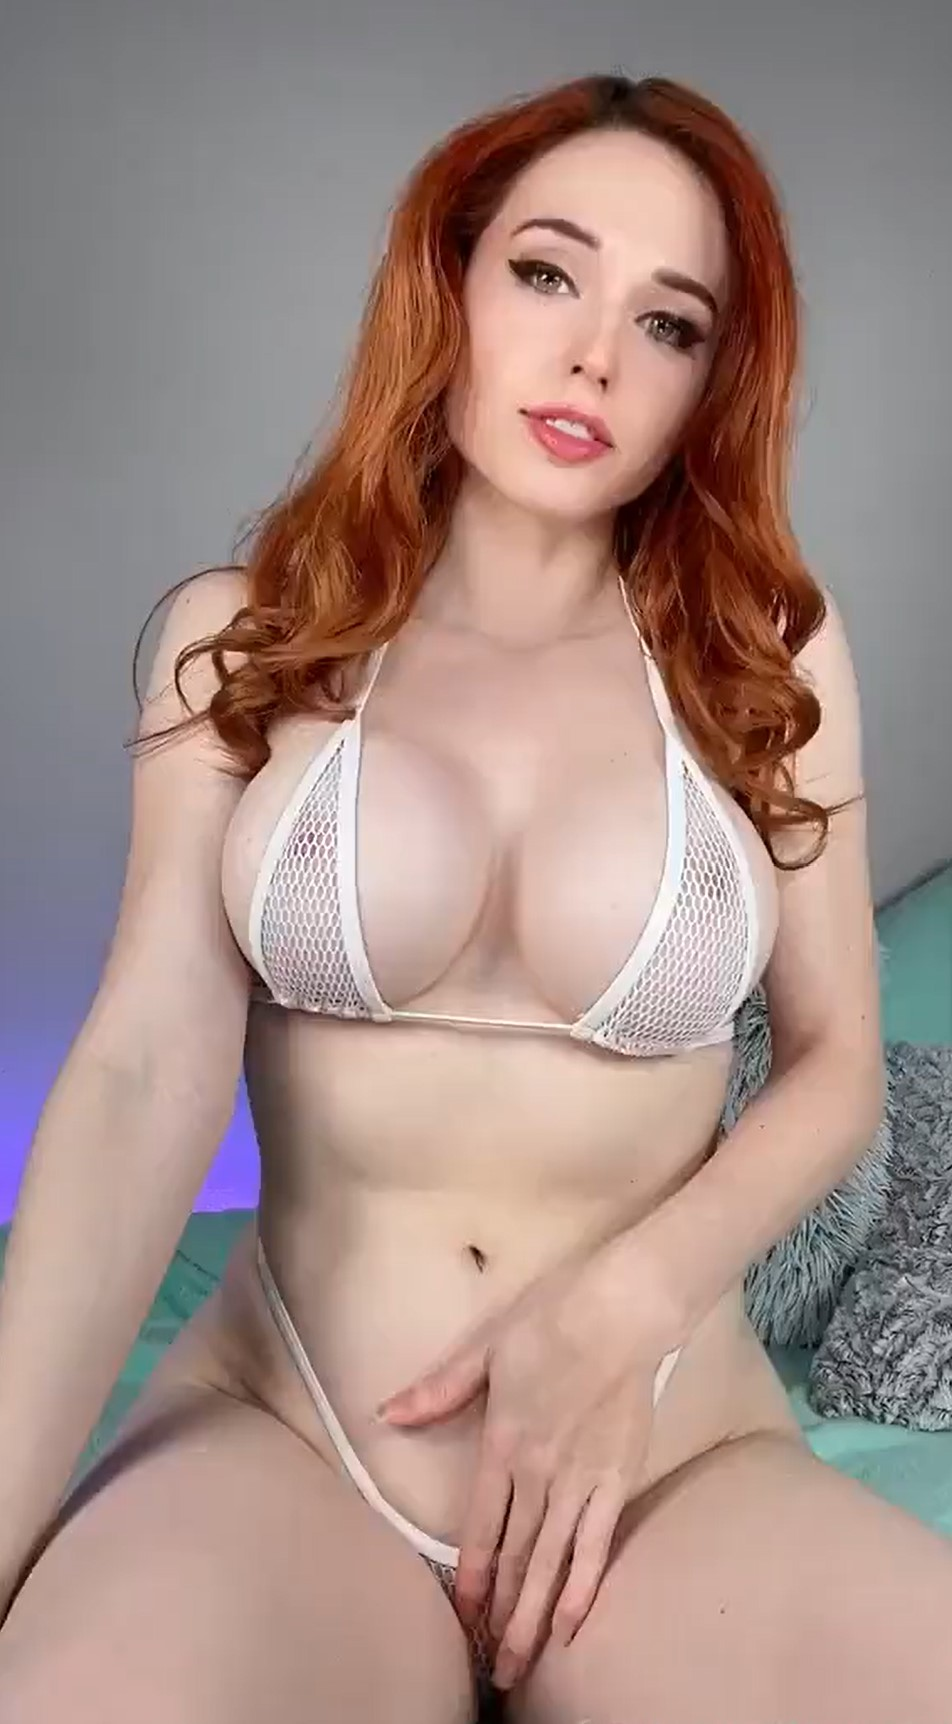 Amouranth Cum On My Boobs Video Leaked